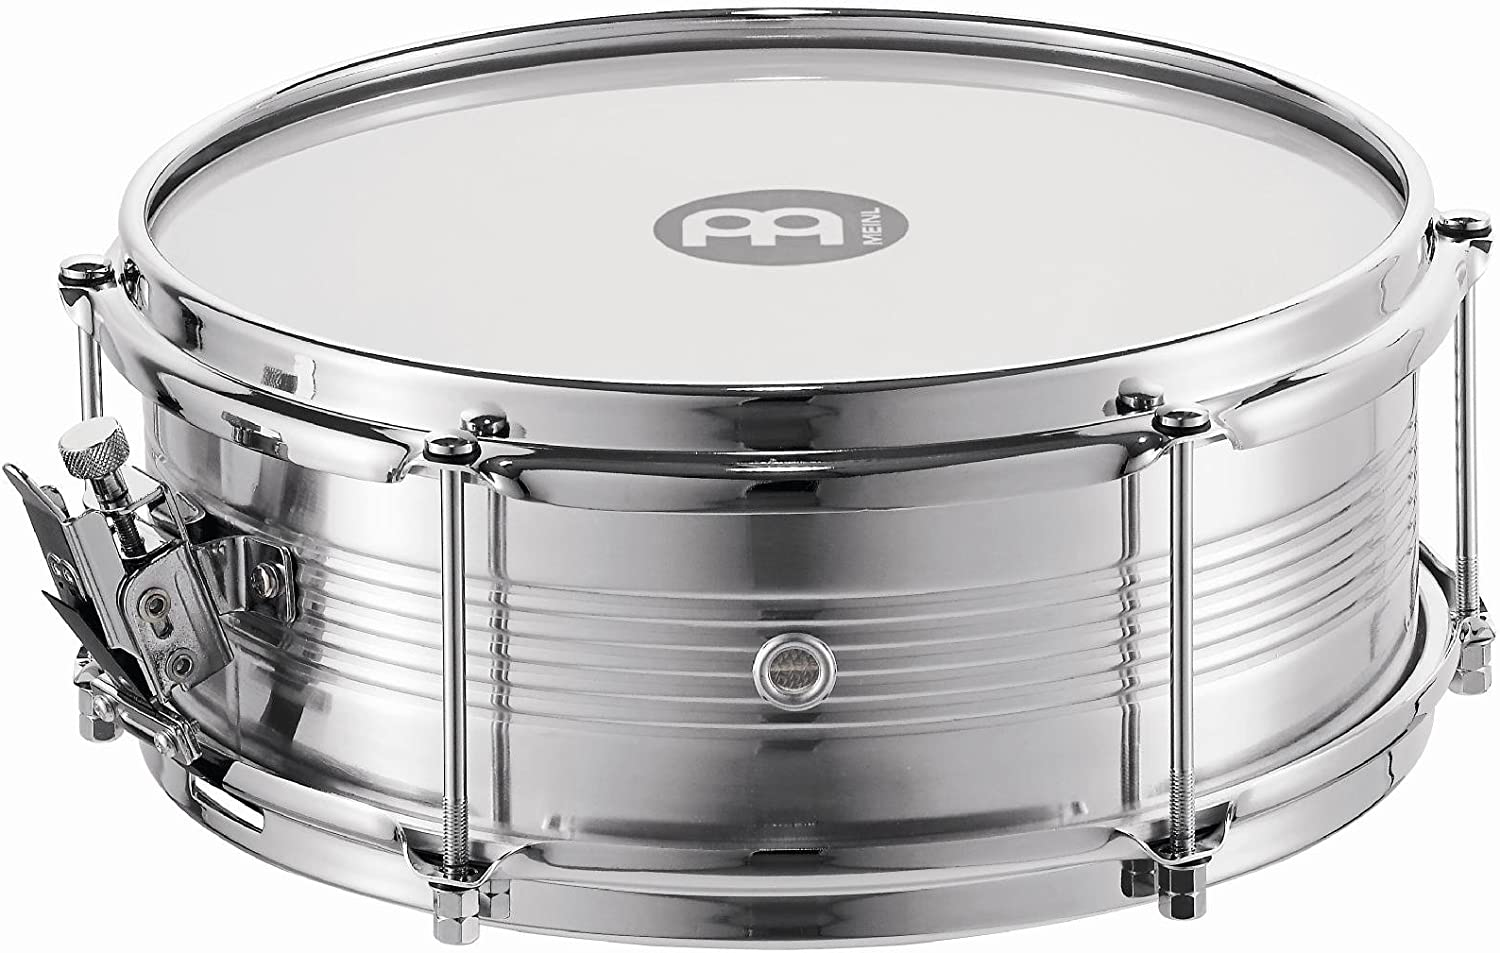 "B001NGDP48 Meinl Percussion 12"" Caixa Drum with Aluminum Body - NOT MADE IN CHINA - Equipped with Steel Snare Wires and Throw-Off, 2-YEAR WARRANTY (CA12) 71qqFaSd5XL.SL1500_"